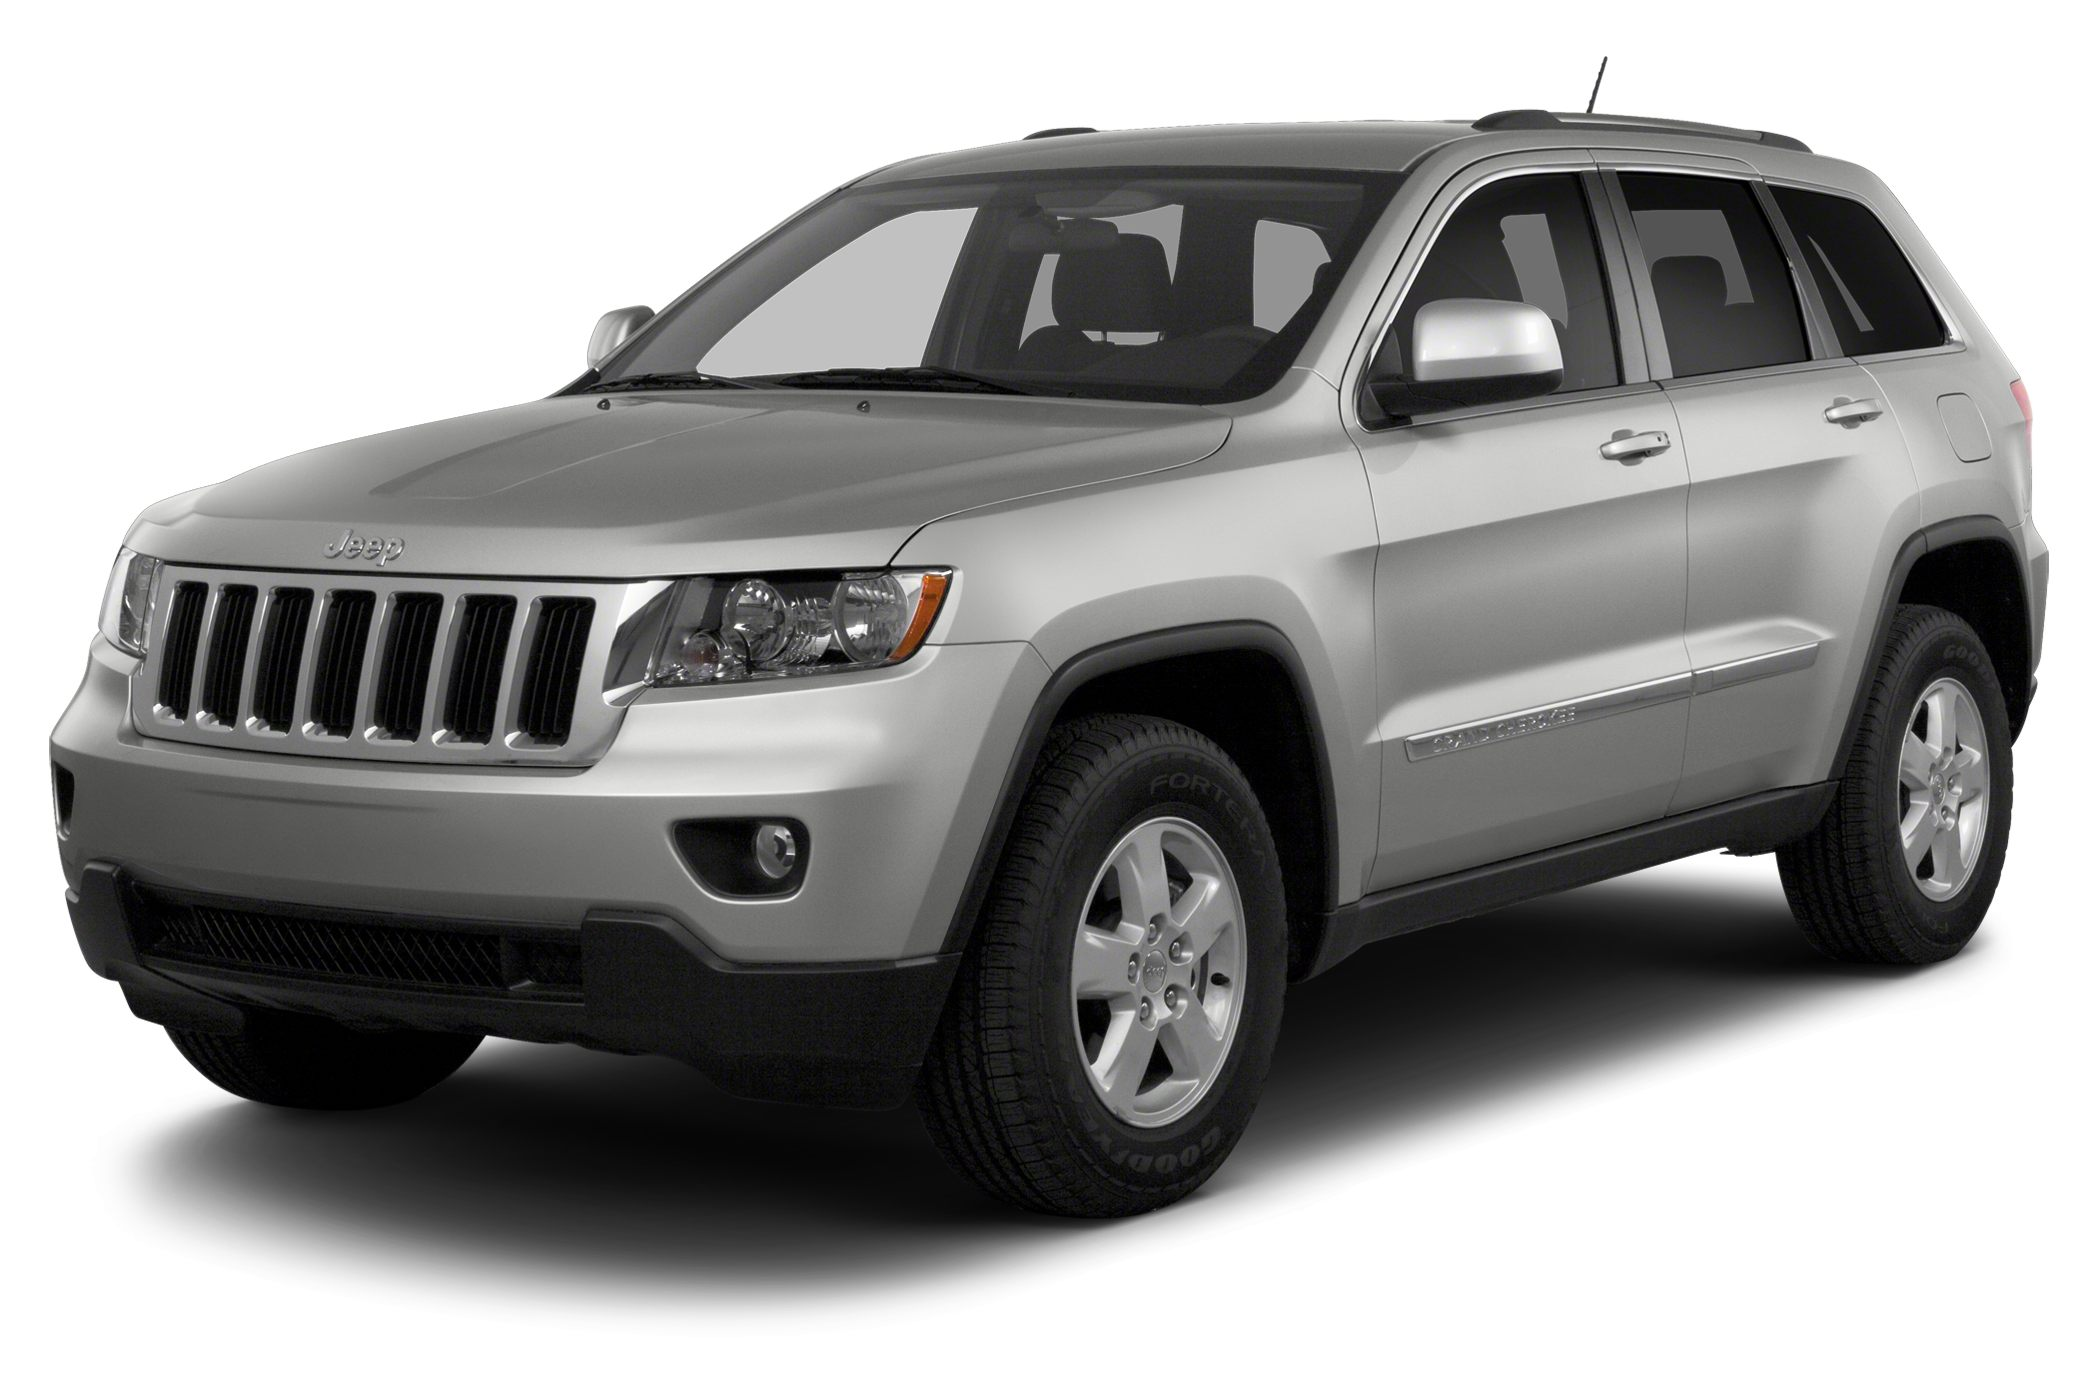 2013 Jeep Grand Cherokee Laredo 4dr 4x4 Specs and Prices